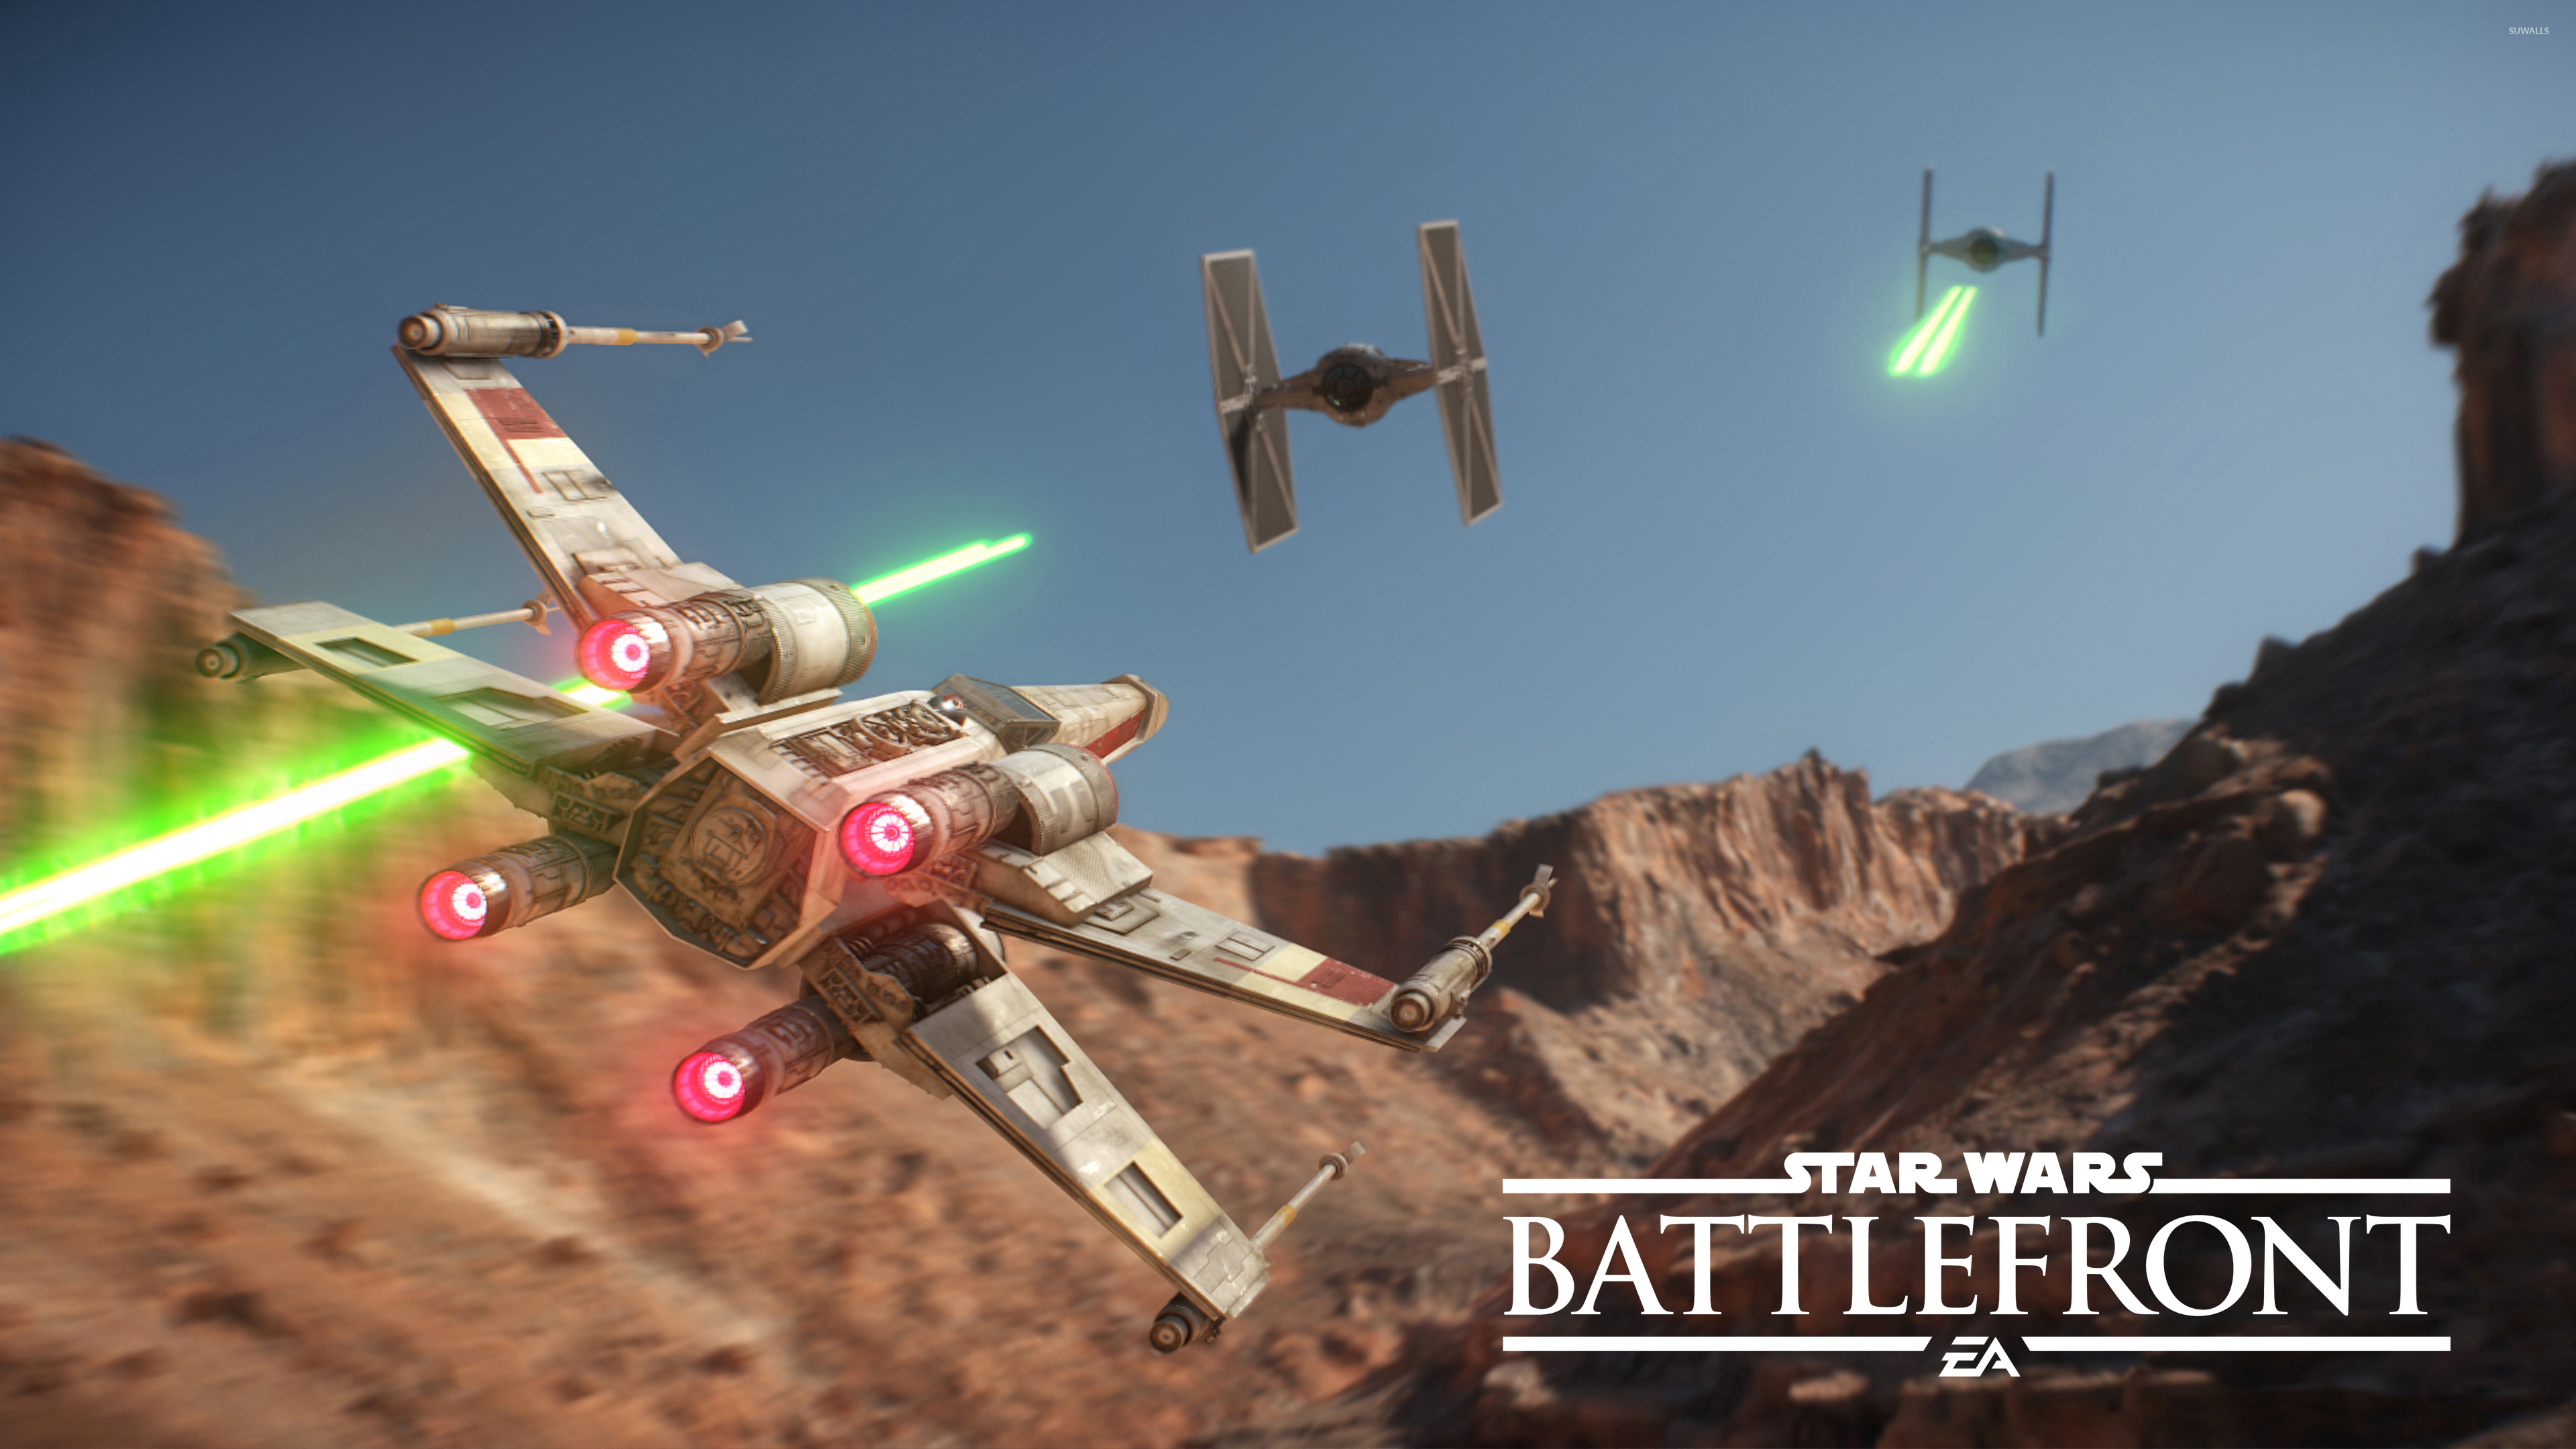 X Wing Chasing Tie Fighters In Star Wars Battlefront Wallpaper